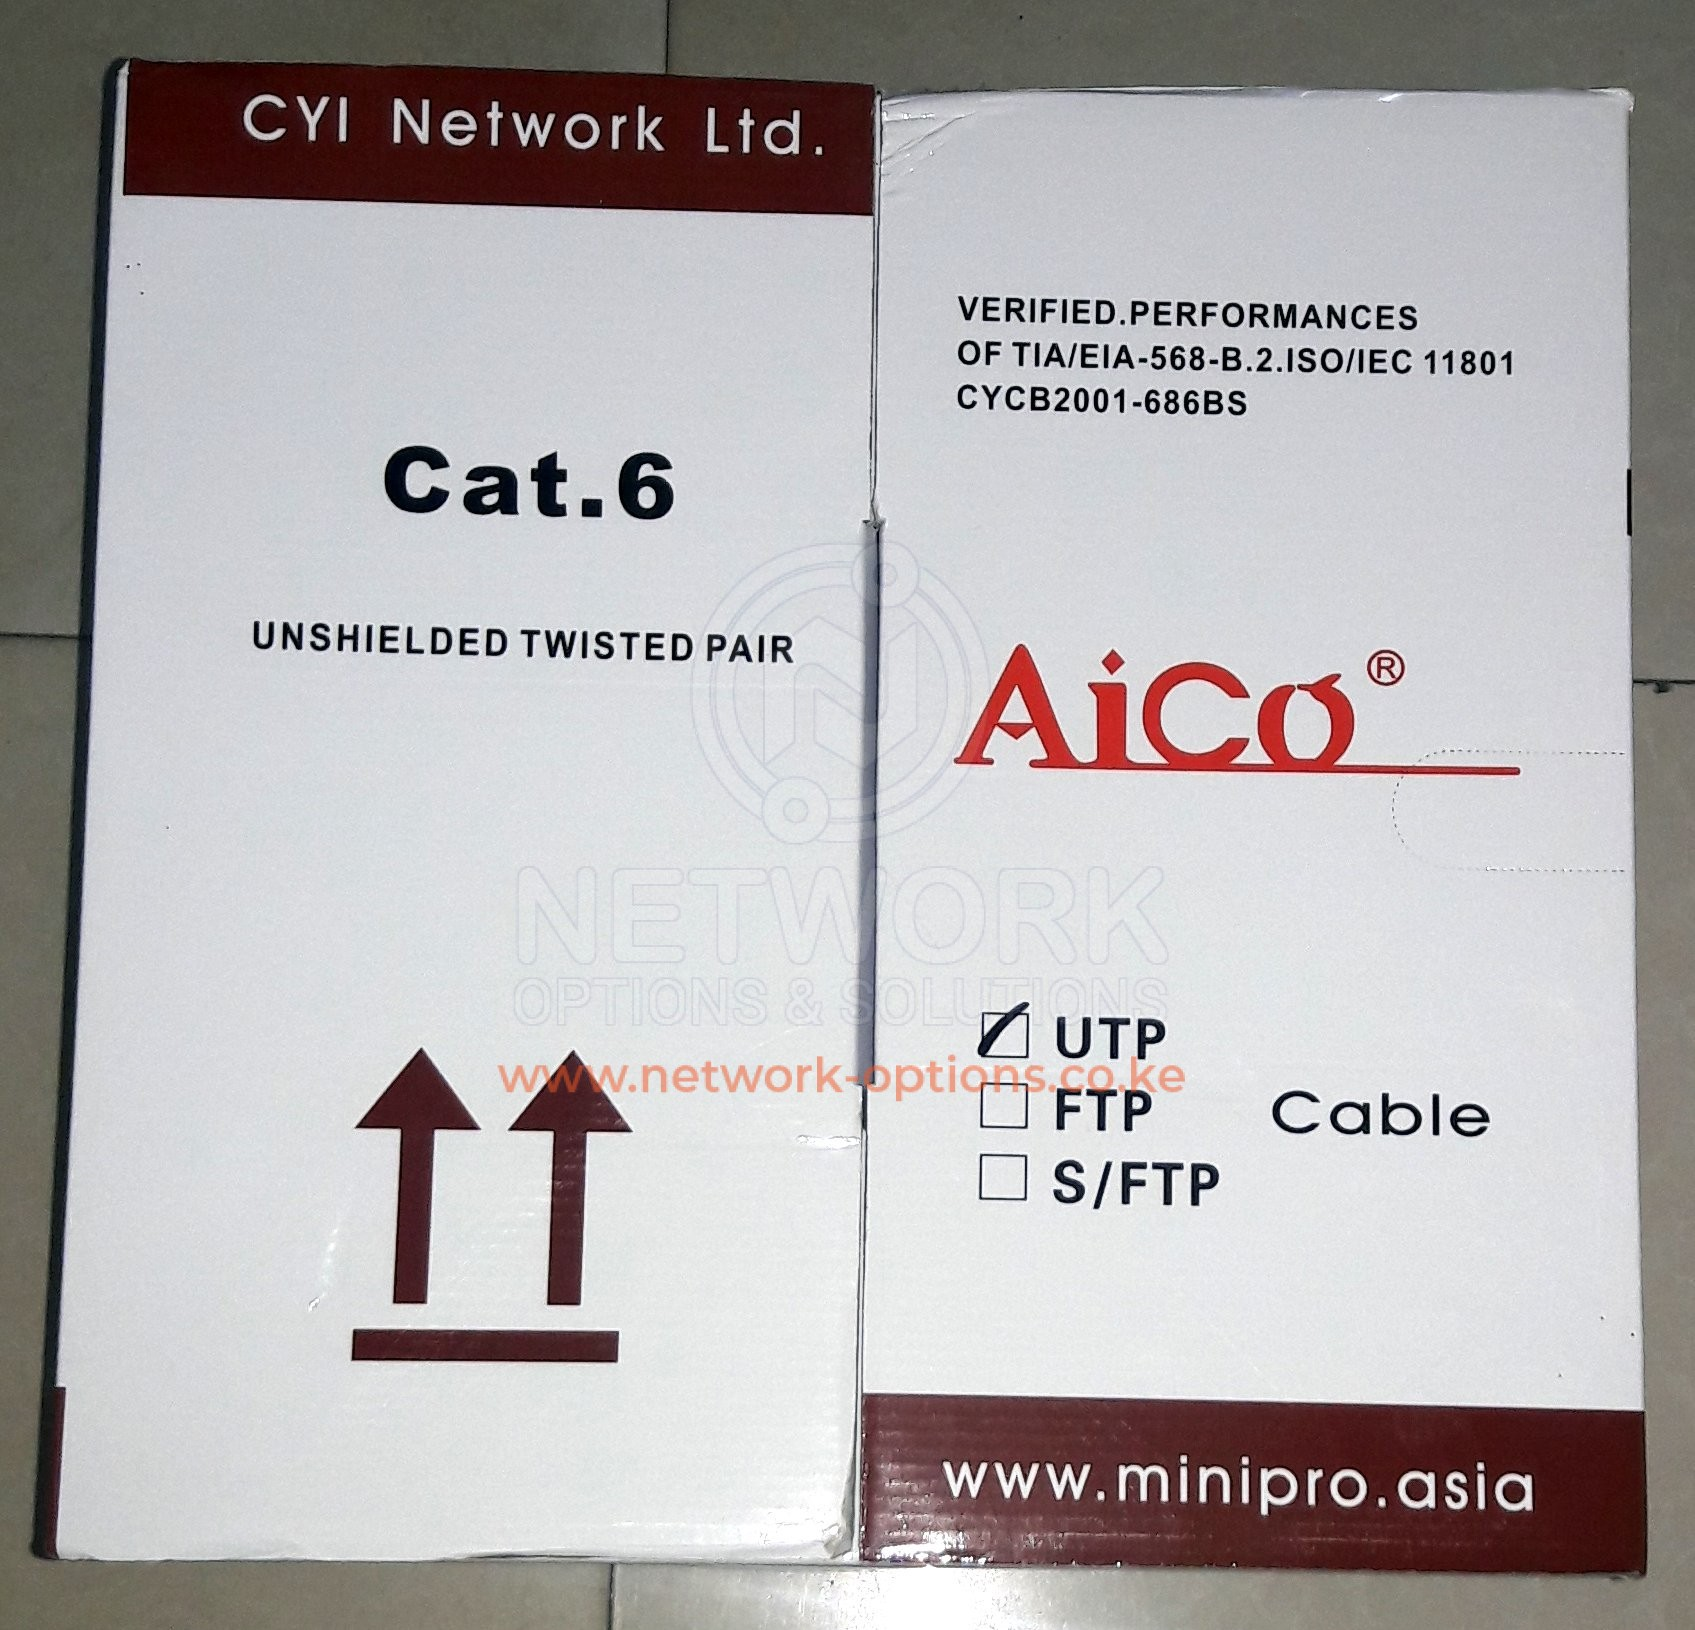 Aico Cable Utp Cat6 Network Options And Solutions Ltd Phone Wiring Click To Enlarge